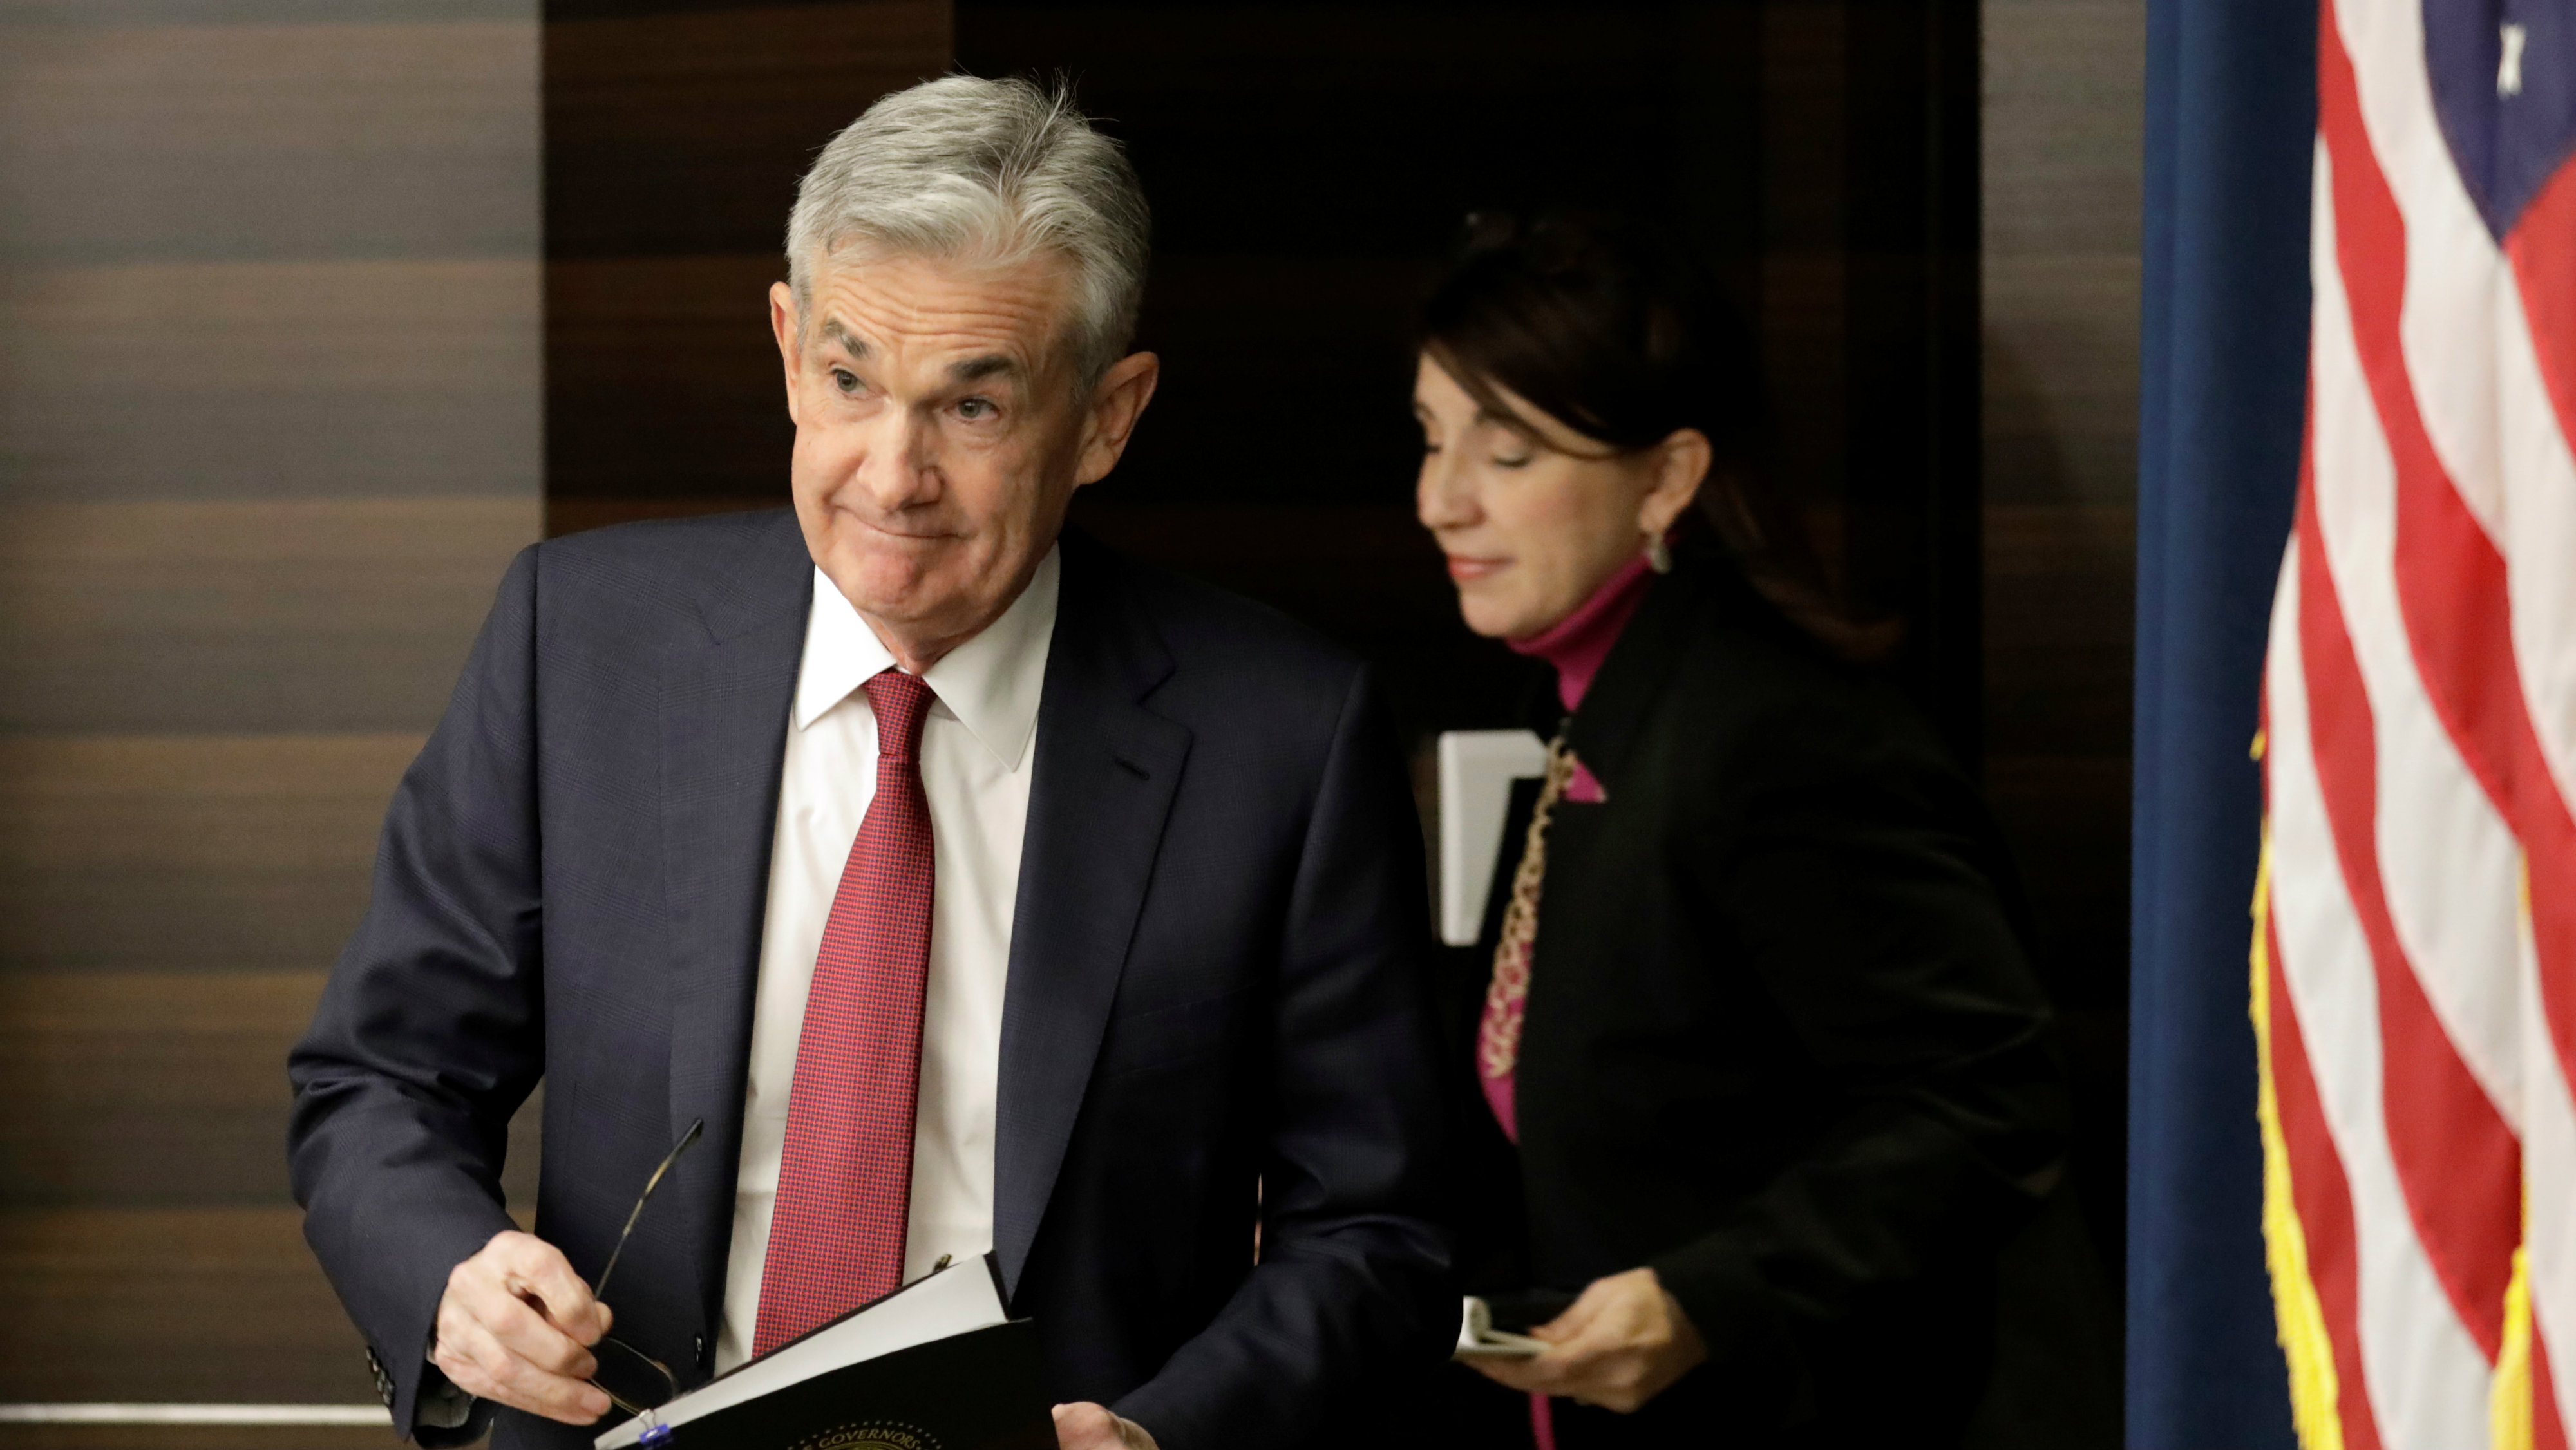 Jerome Powell, chairman of the US Federal Reserve